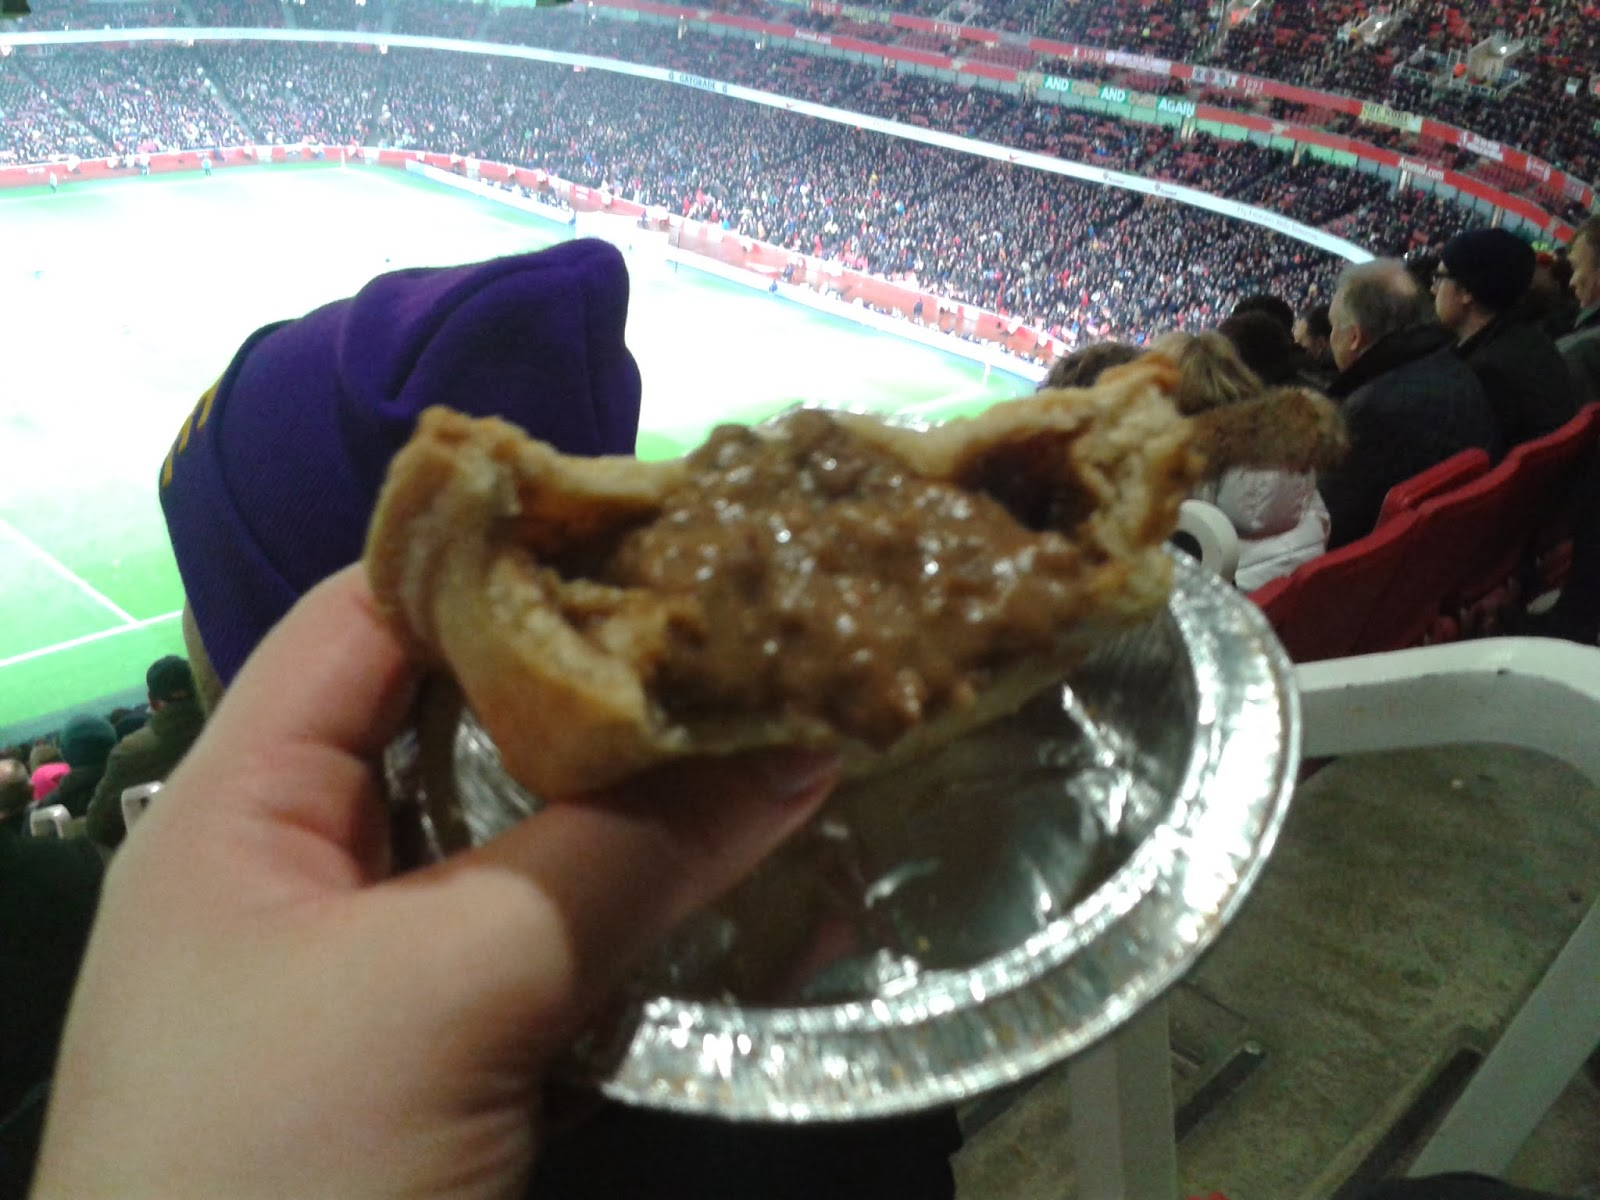 Holland's Big Peppered Steak Pie at the Emirates Stadium, Arsenal